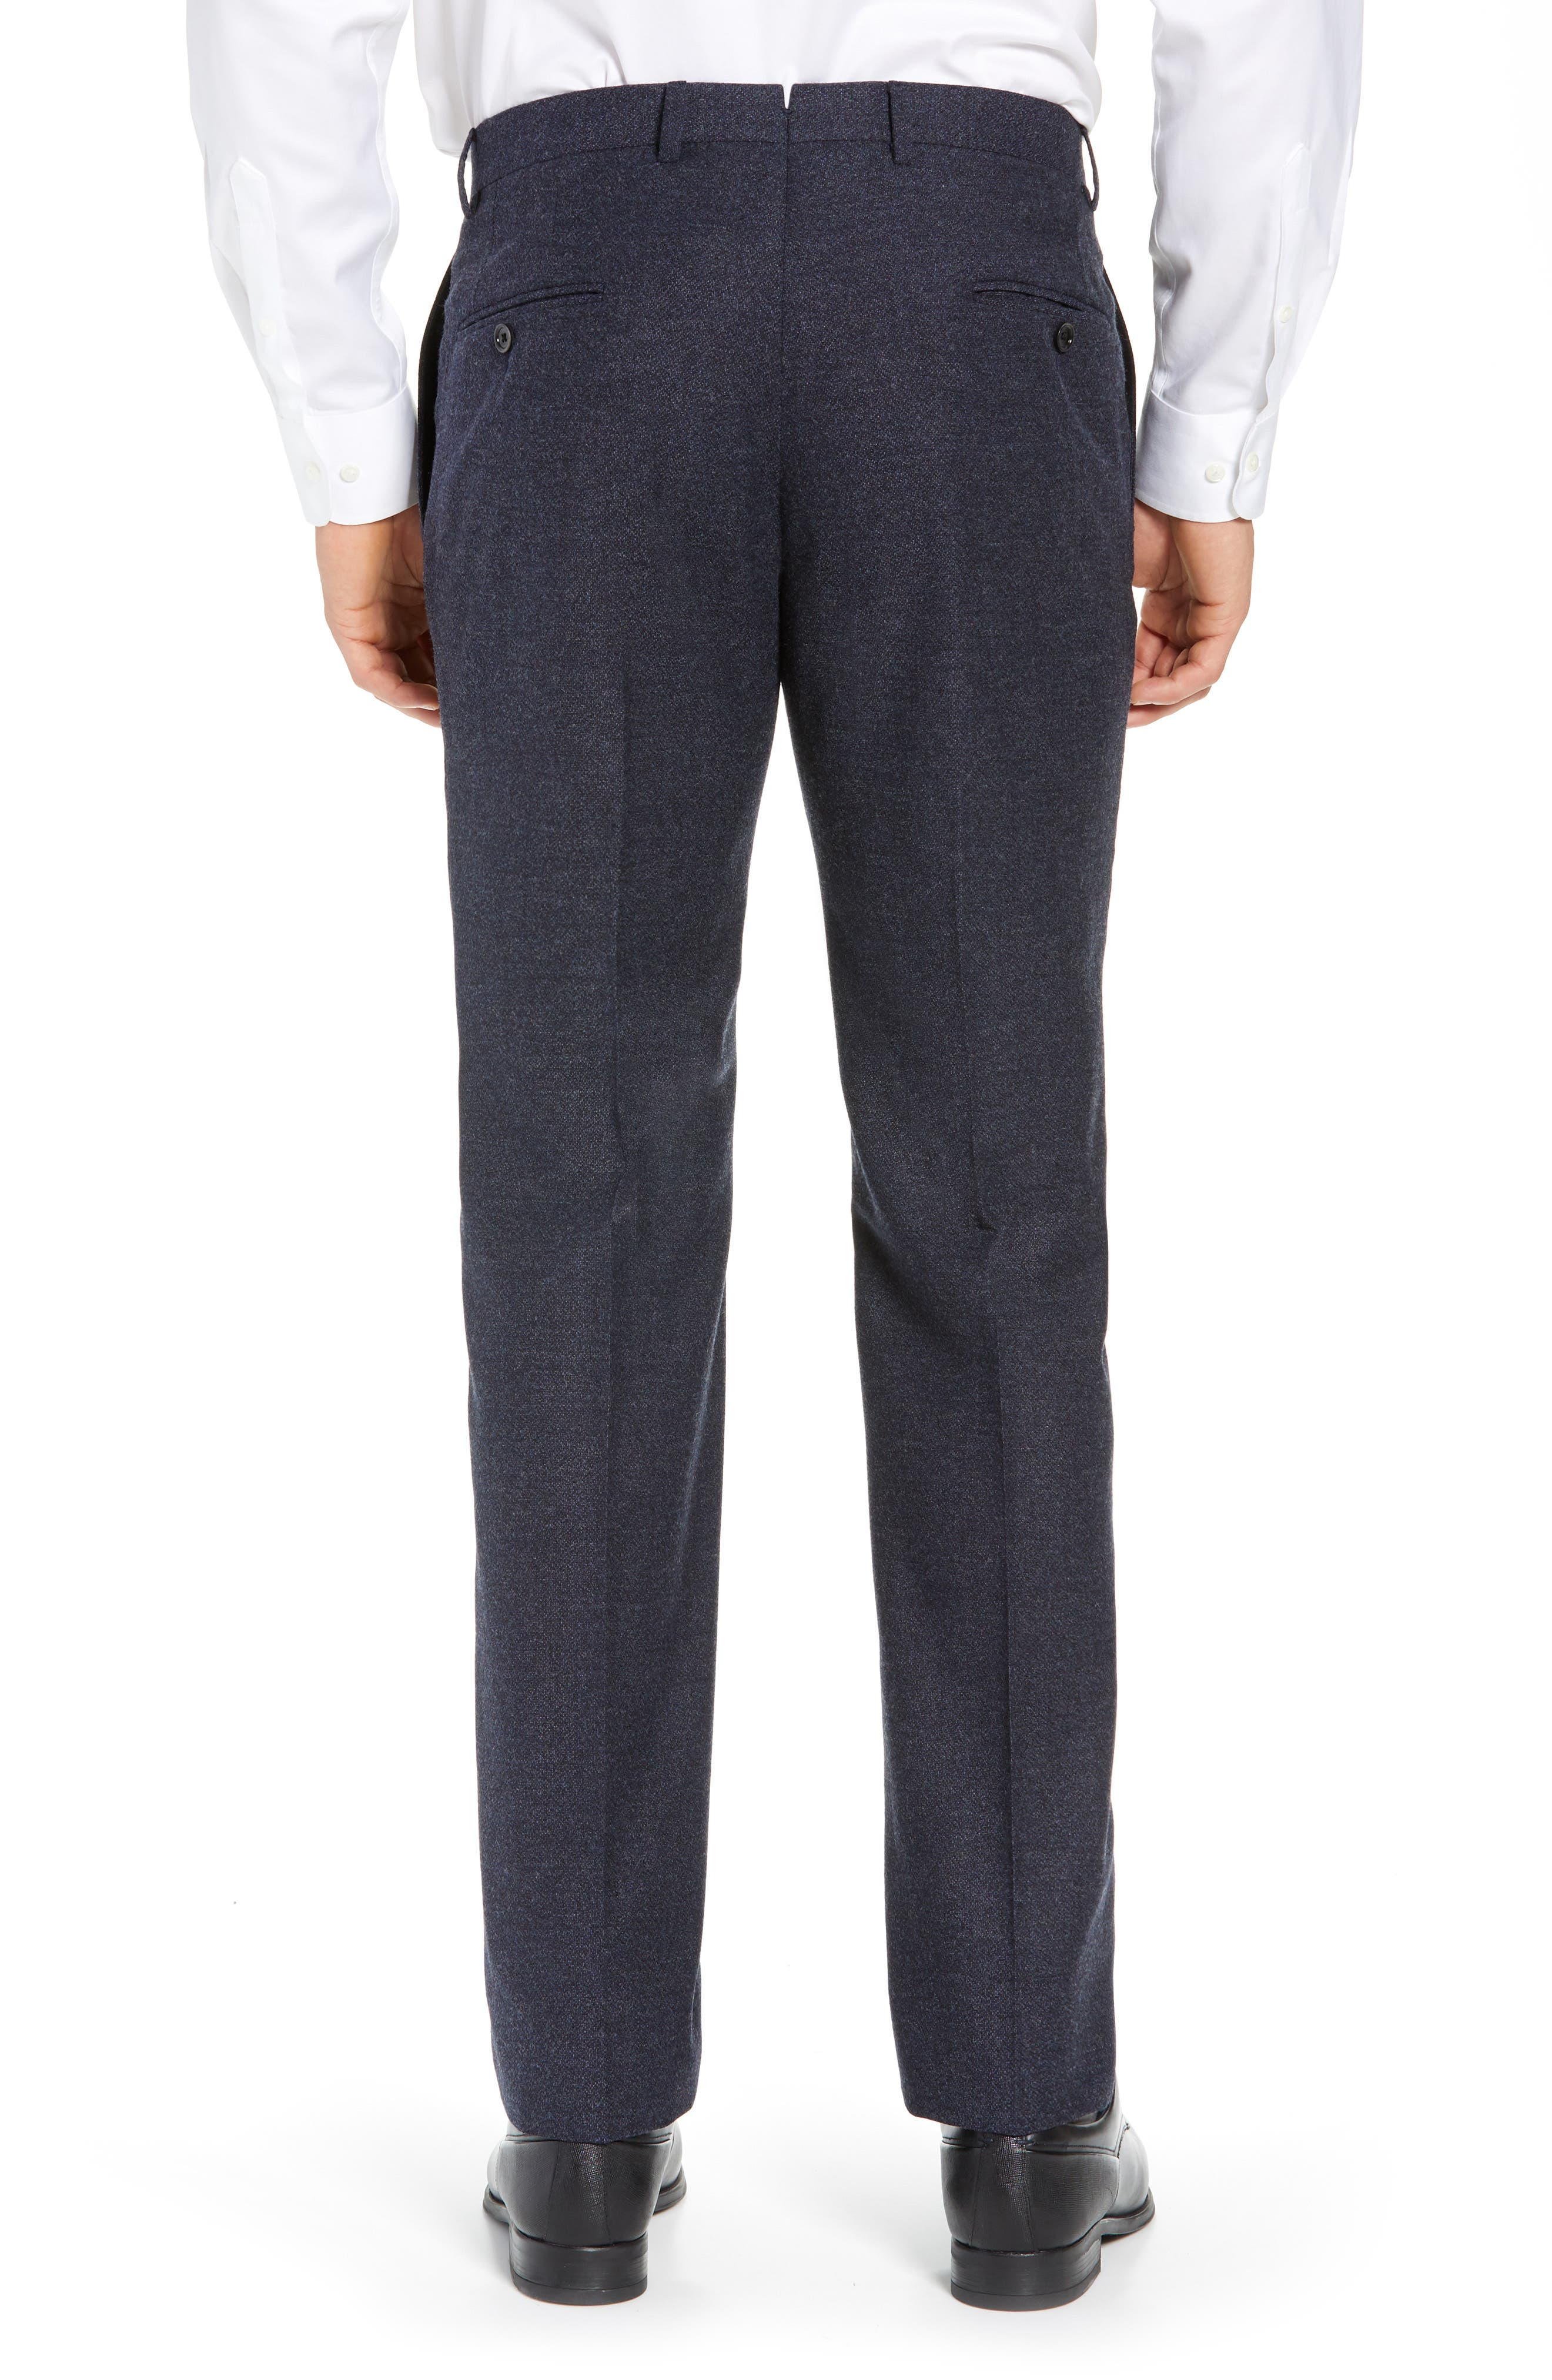 HICKEY FREEMAN,                             Classic Fit Solid Trousers,                             Alternate thumbnail 2, color,                             GREY